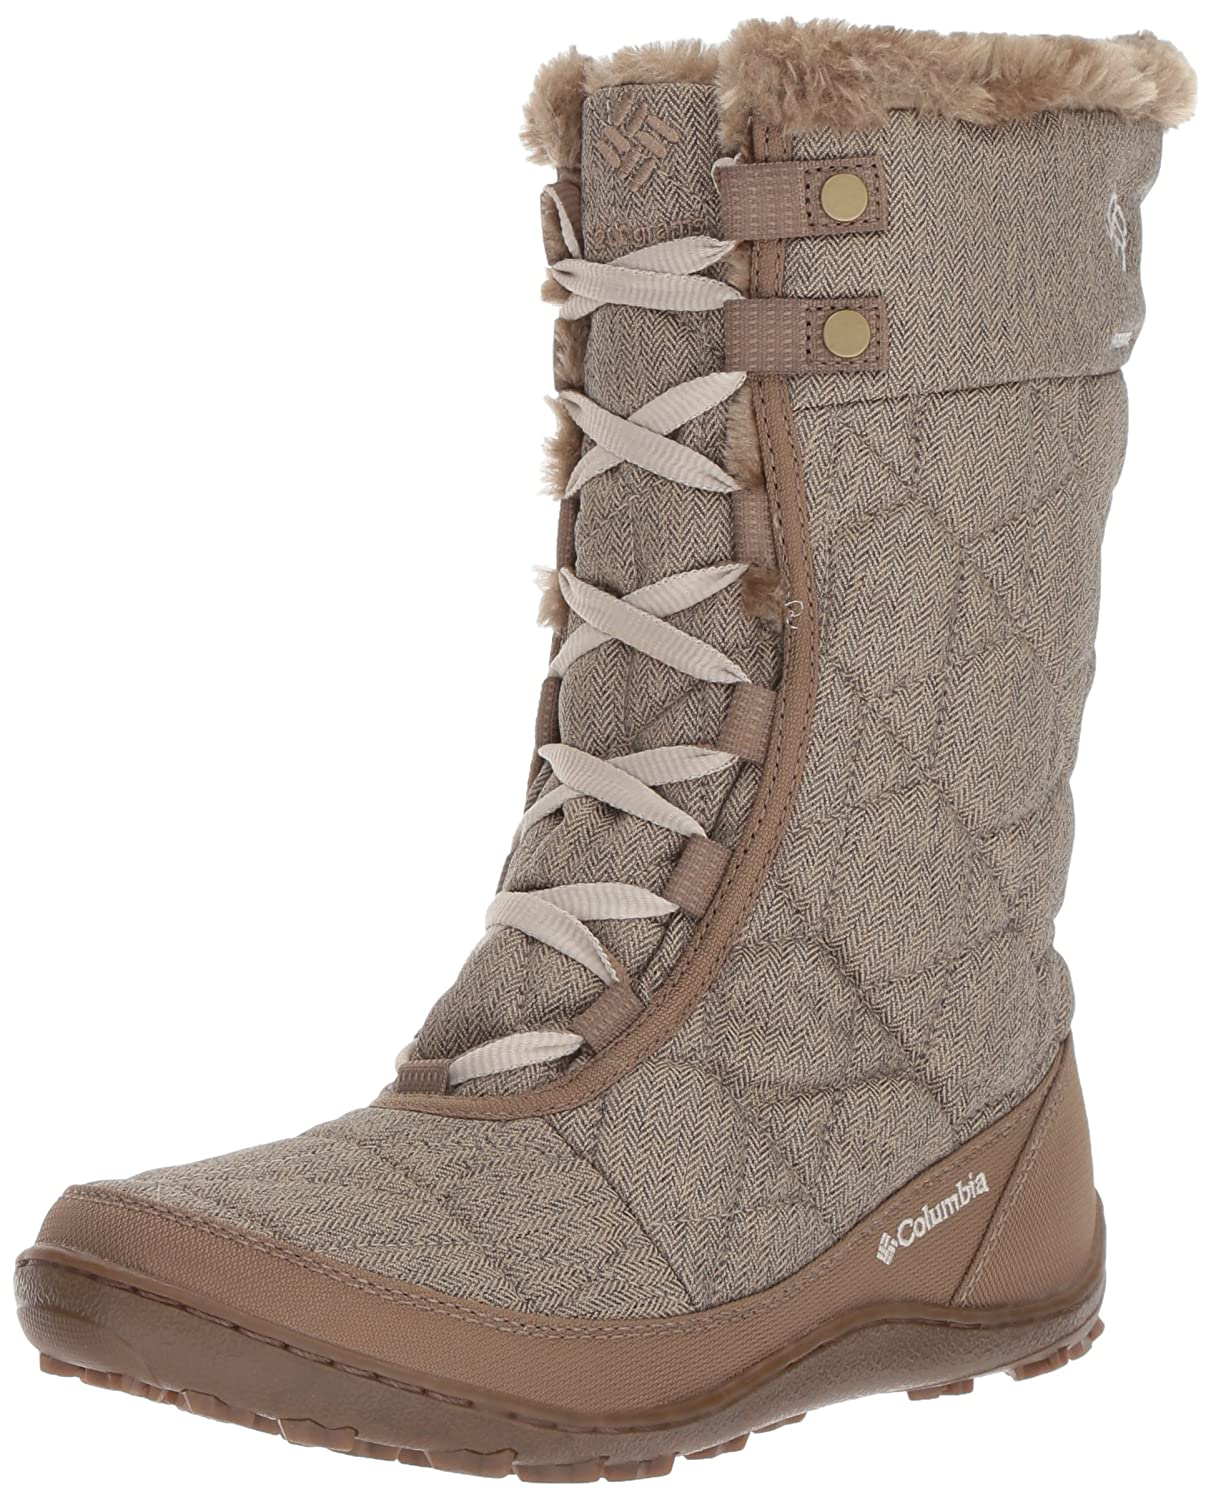 Columbia Women's Minx Mid Alta Omni-Heat Snow Boot B01N7K2A7E 8 B(M) US|British Tan, Fawn